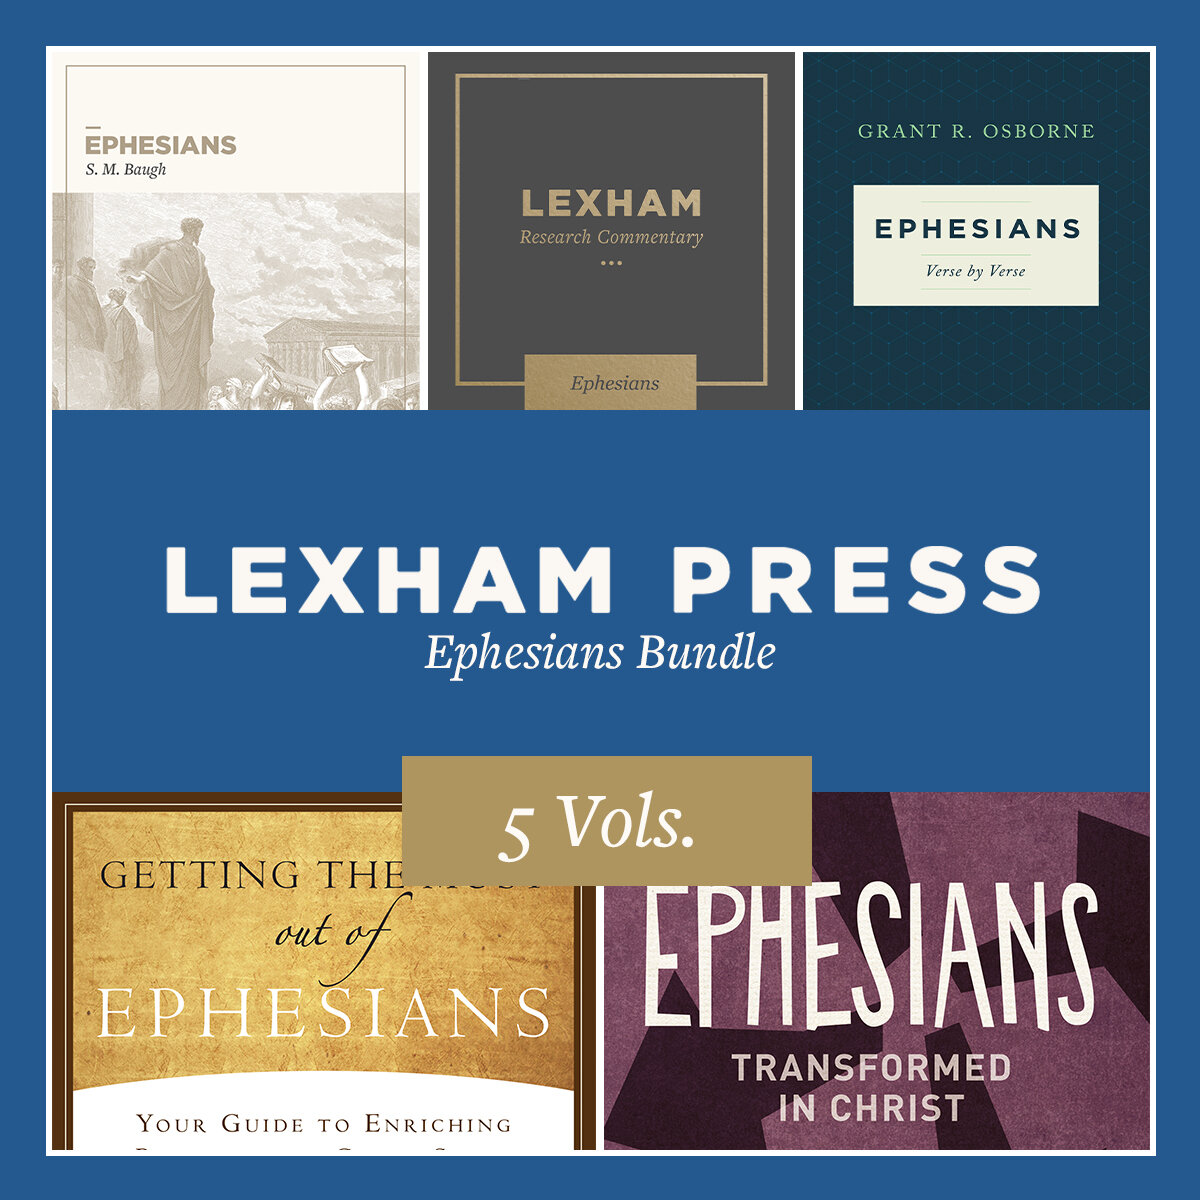 Lexham Press Ephesians Bundle (5 vols.)